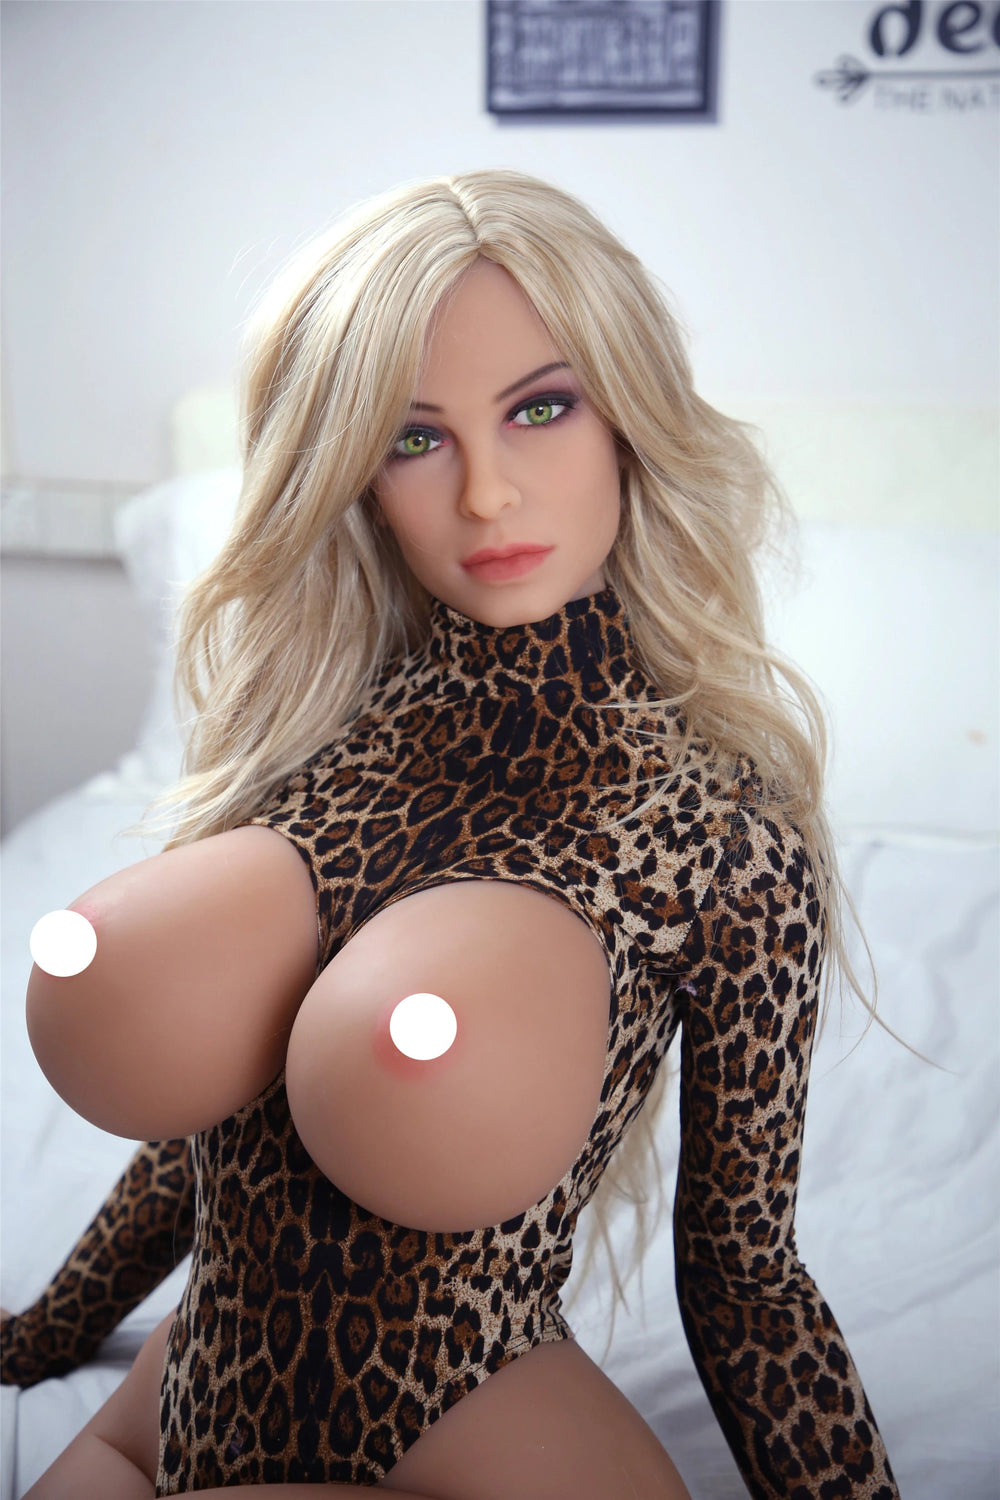 162cm NEW Sexy Love Doll - Own Pleasures